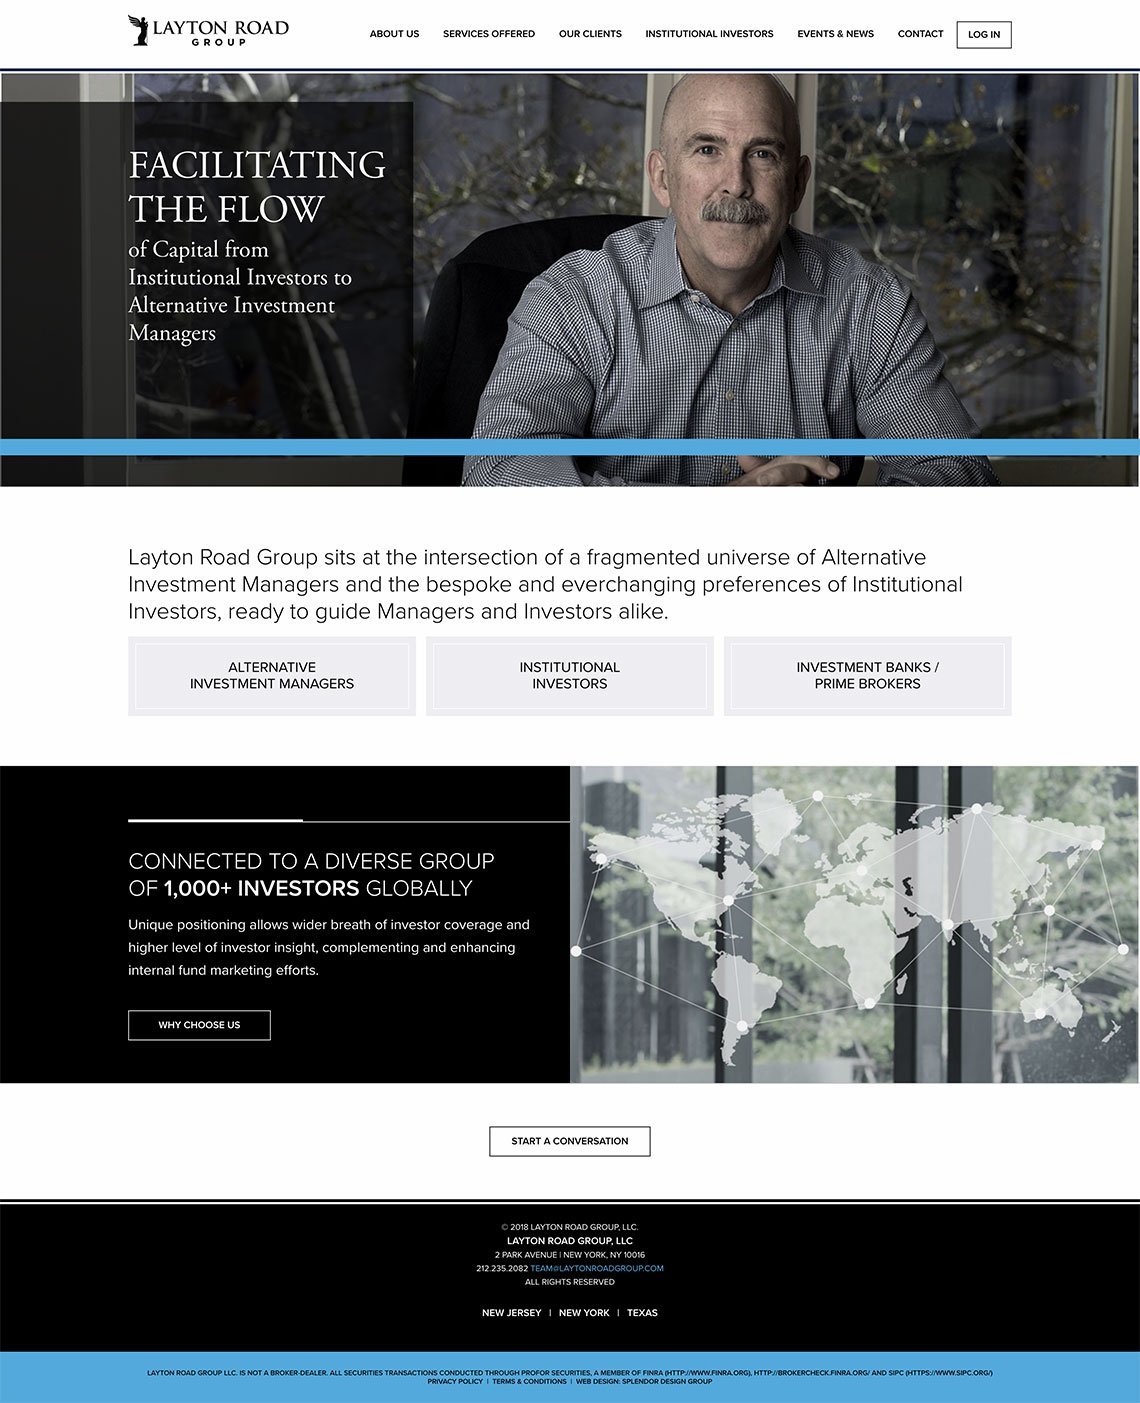 Layton Road Group Professional Business Website.